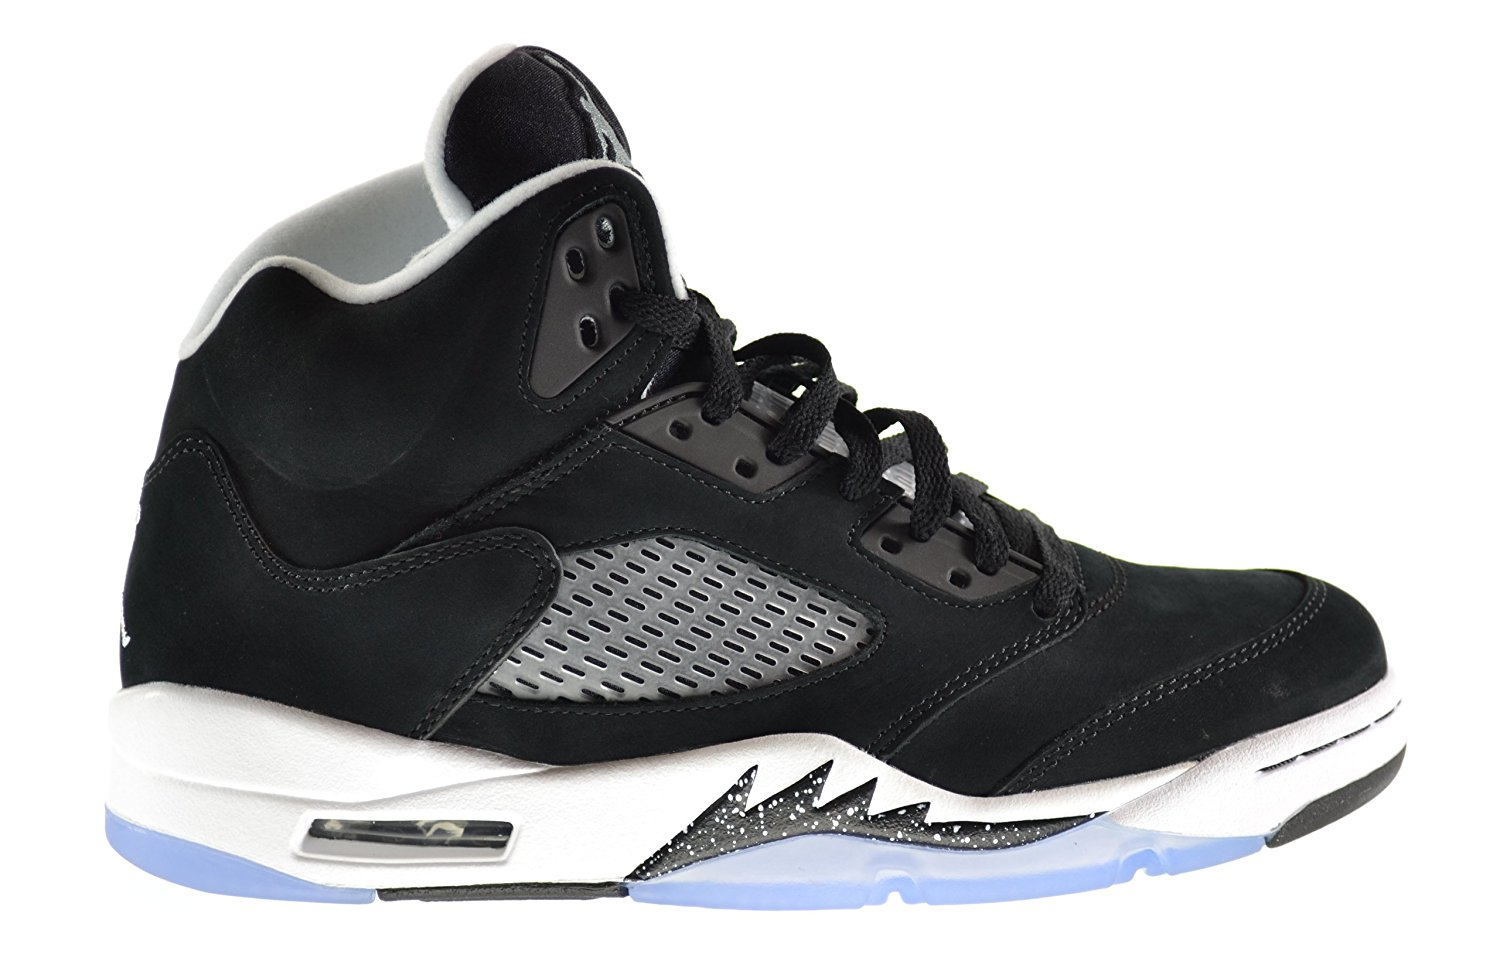 6178ff78a11c Get Quotations · Air Jordan 5 Retro